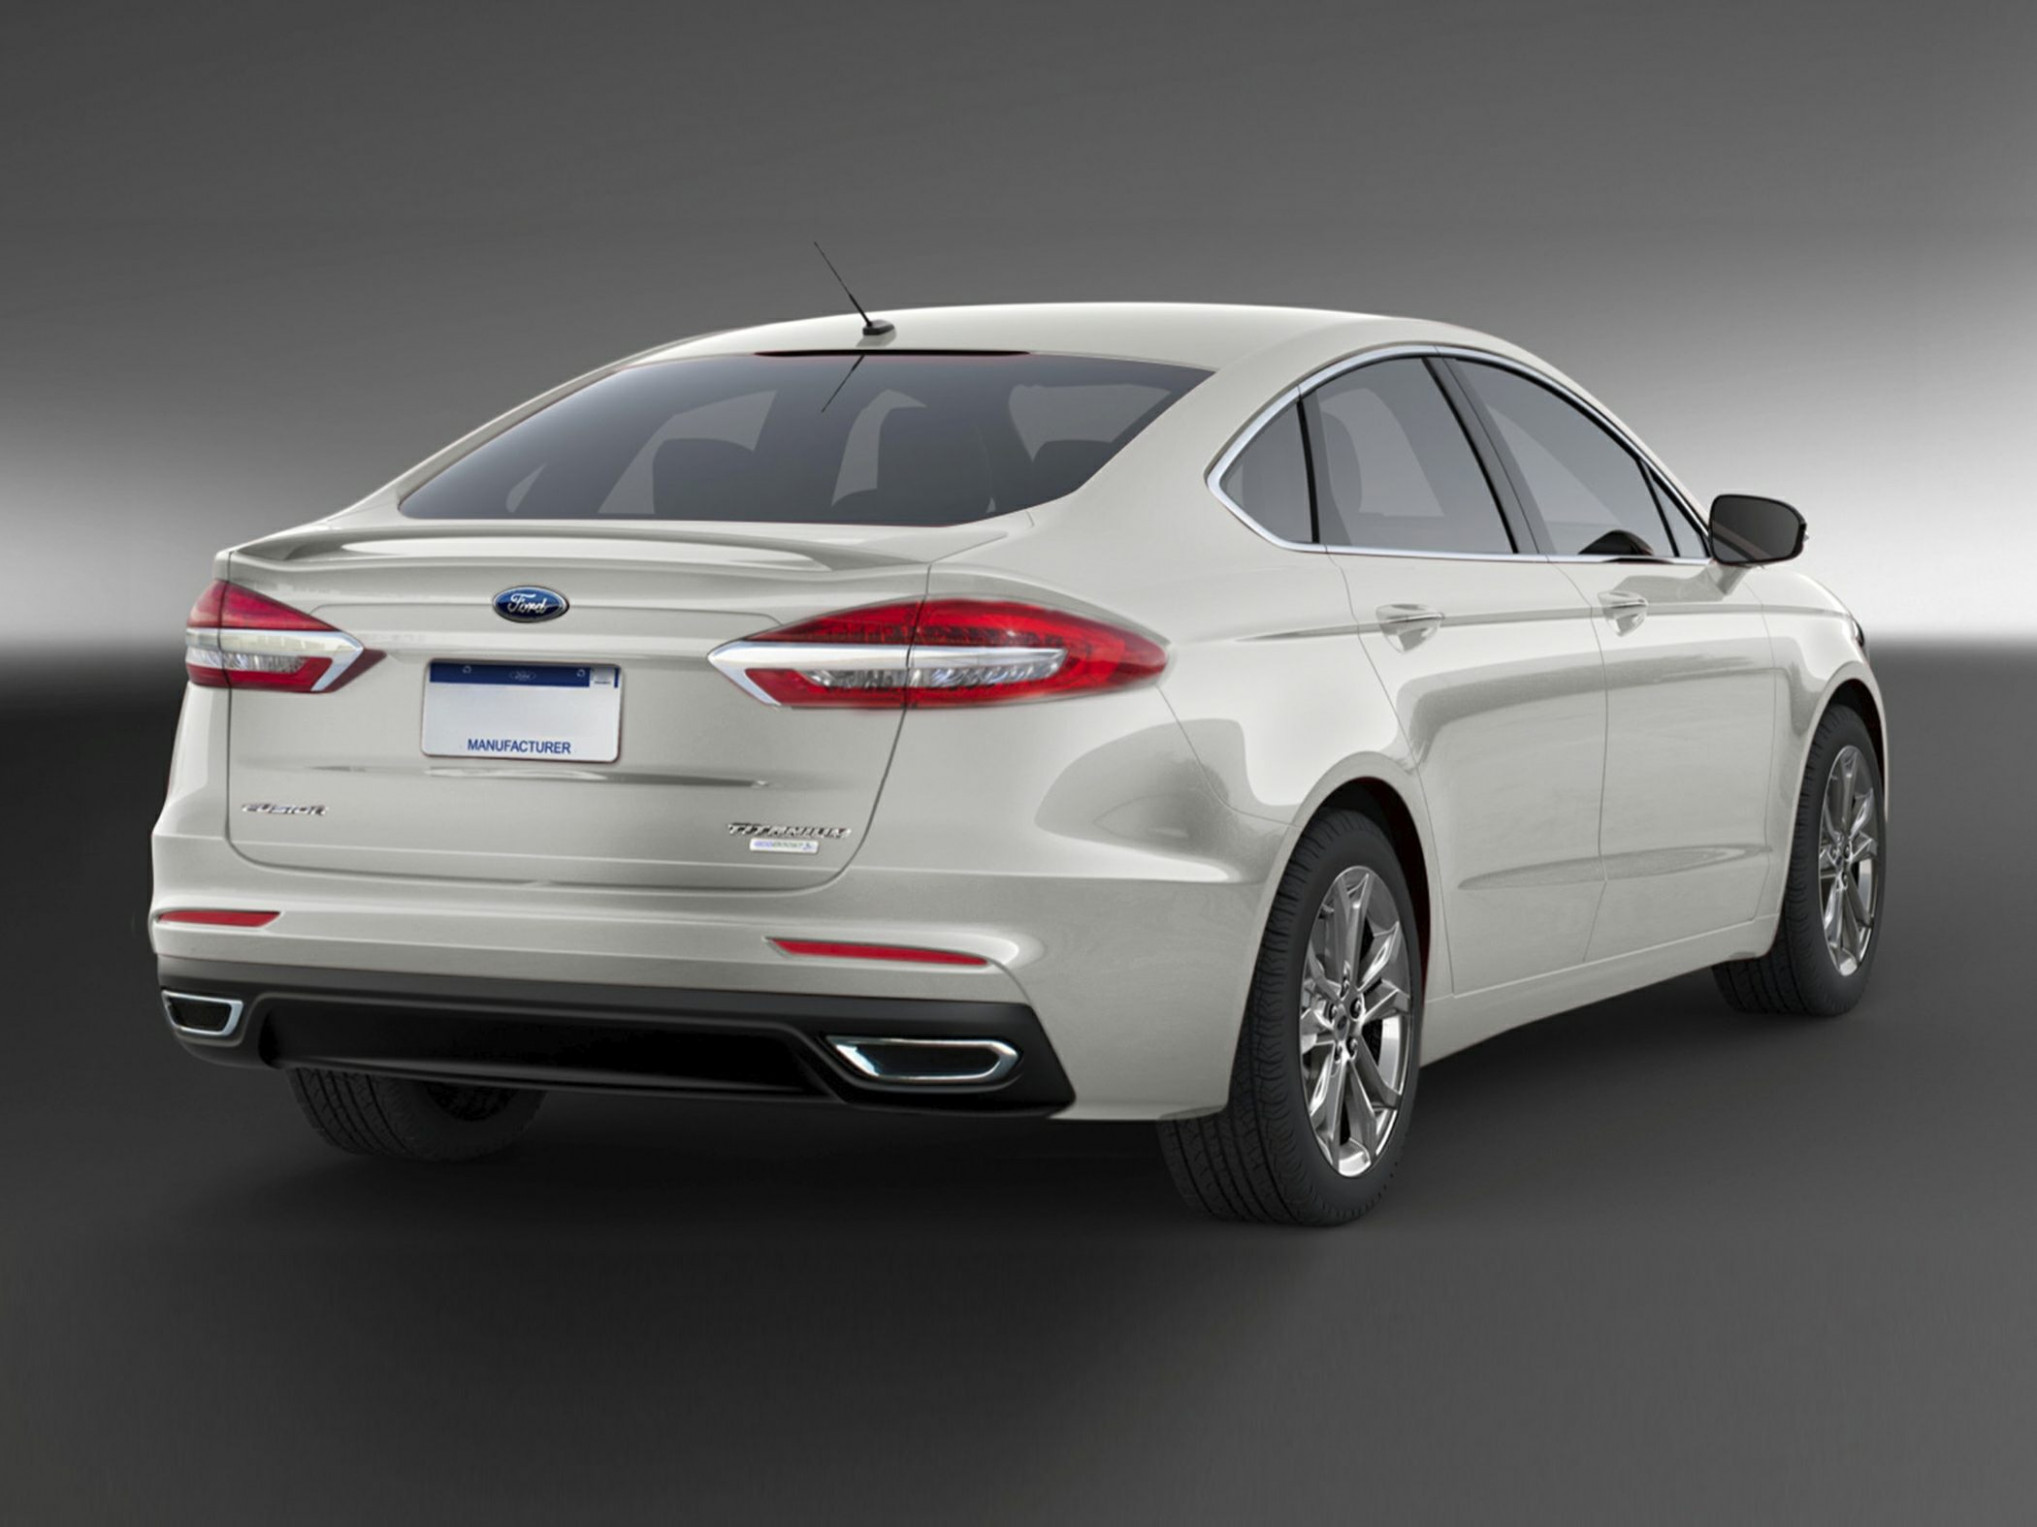 7 Ford Fusion Deals, Prices, Incentives & Leases, Overview ...